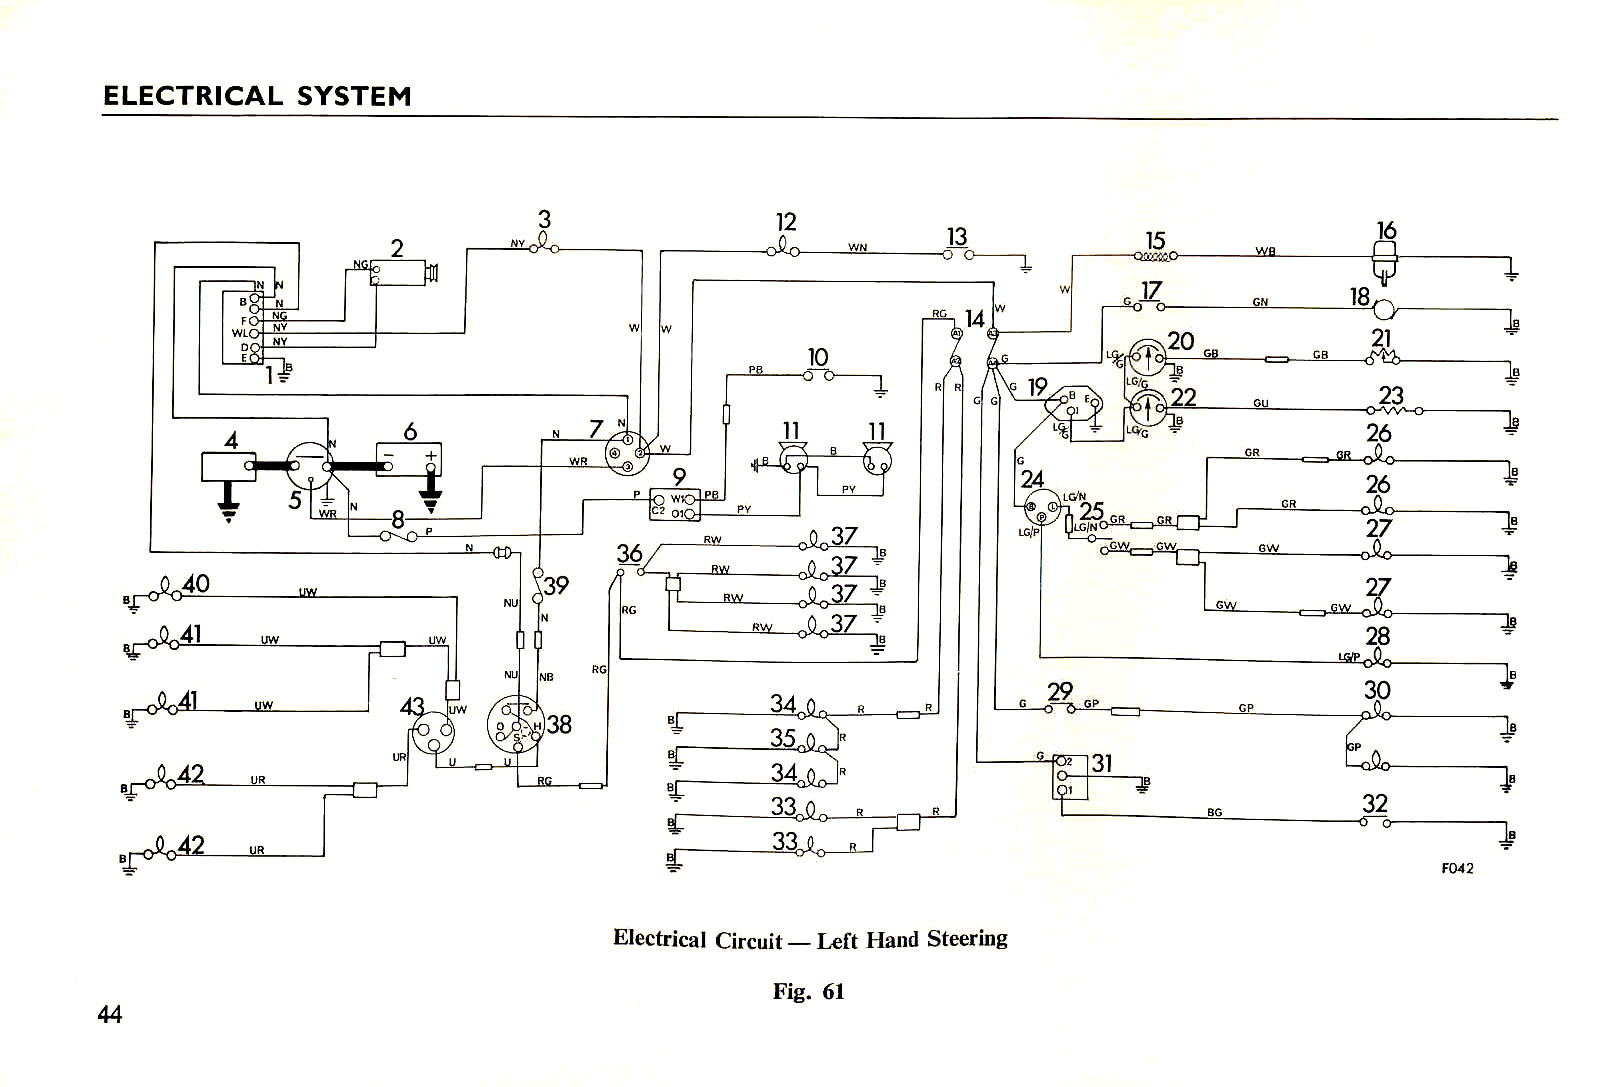 hight resolution of gt6 wiring diagram wiring diagram mega wiring diagram 72 triumph gt6